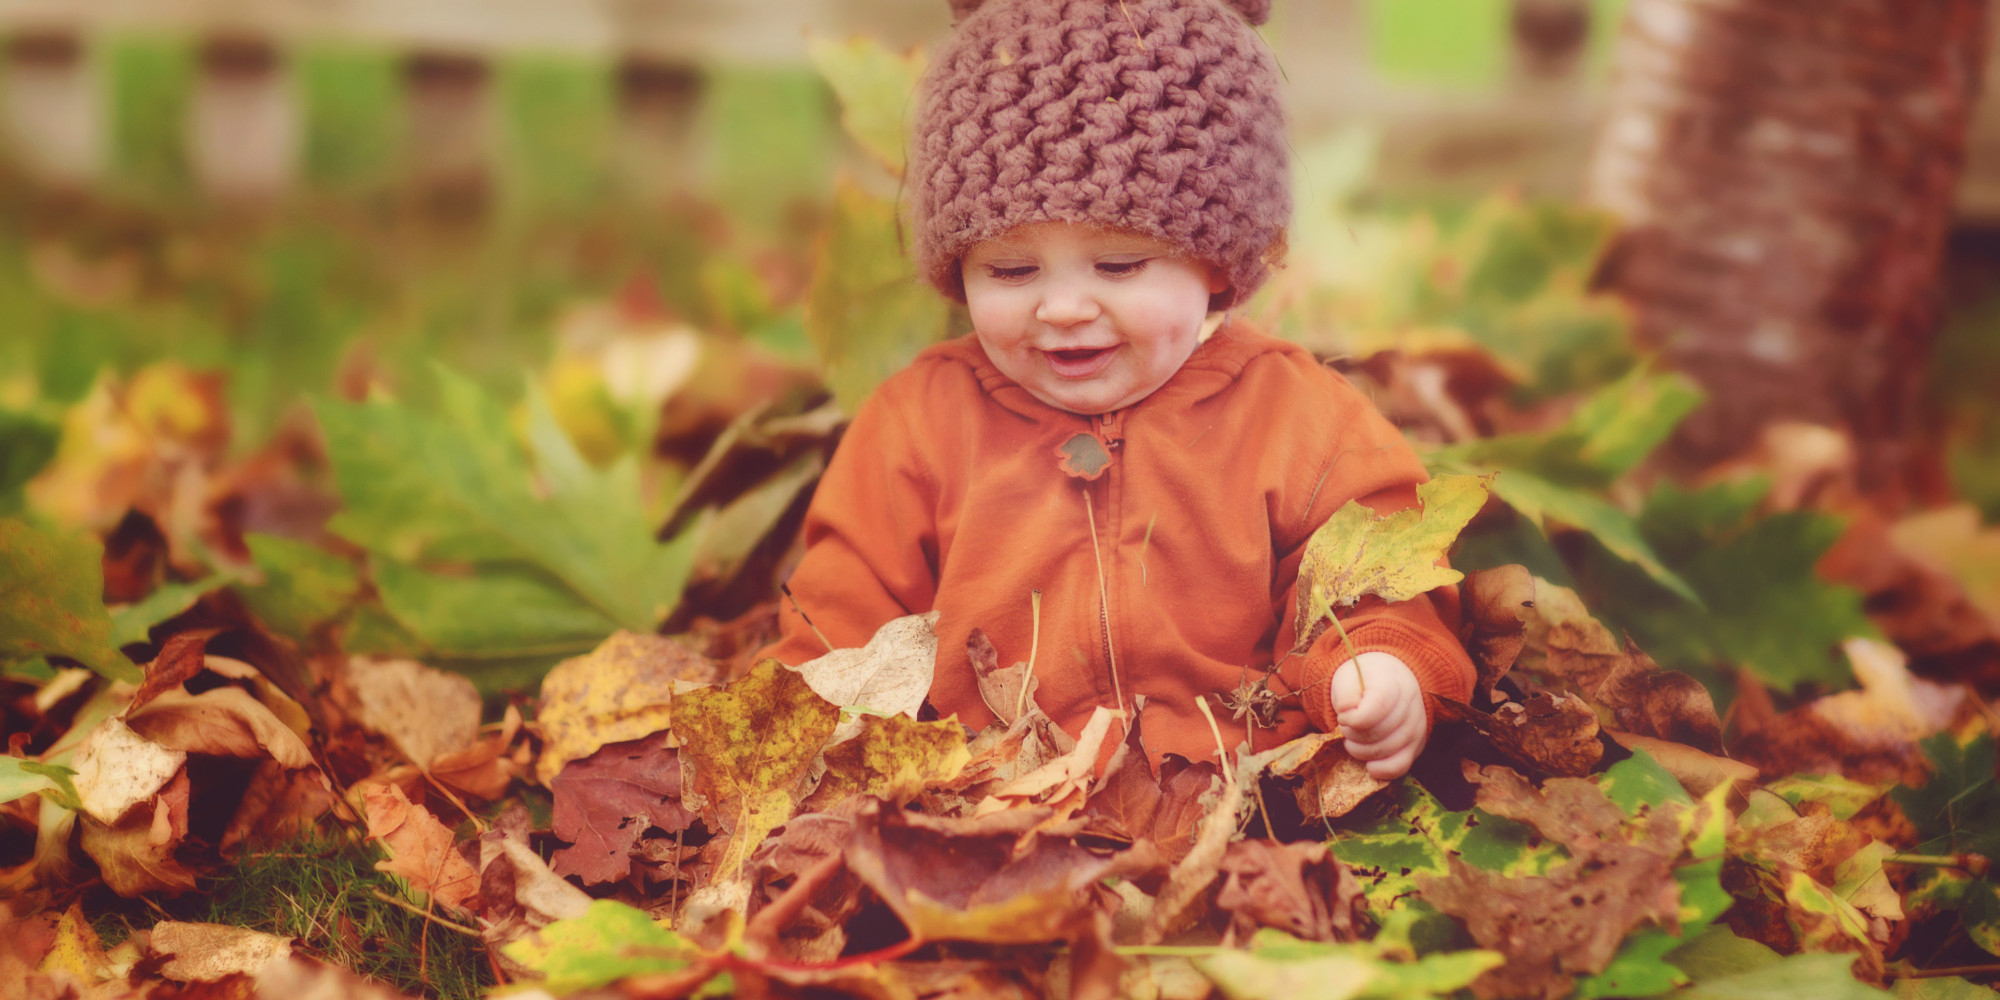 Small Cute Boy Wallpaper 12 Autumn Themed Names For Babies Born This Season Huffpost